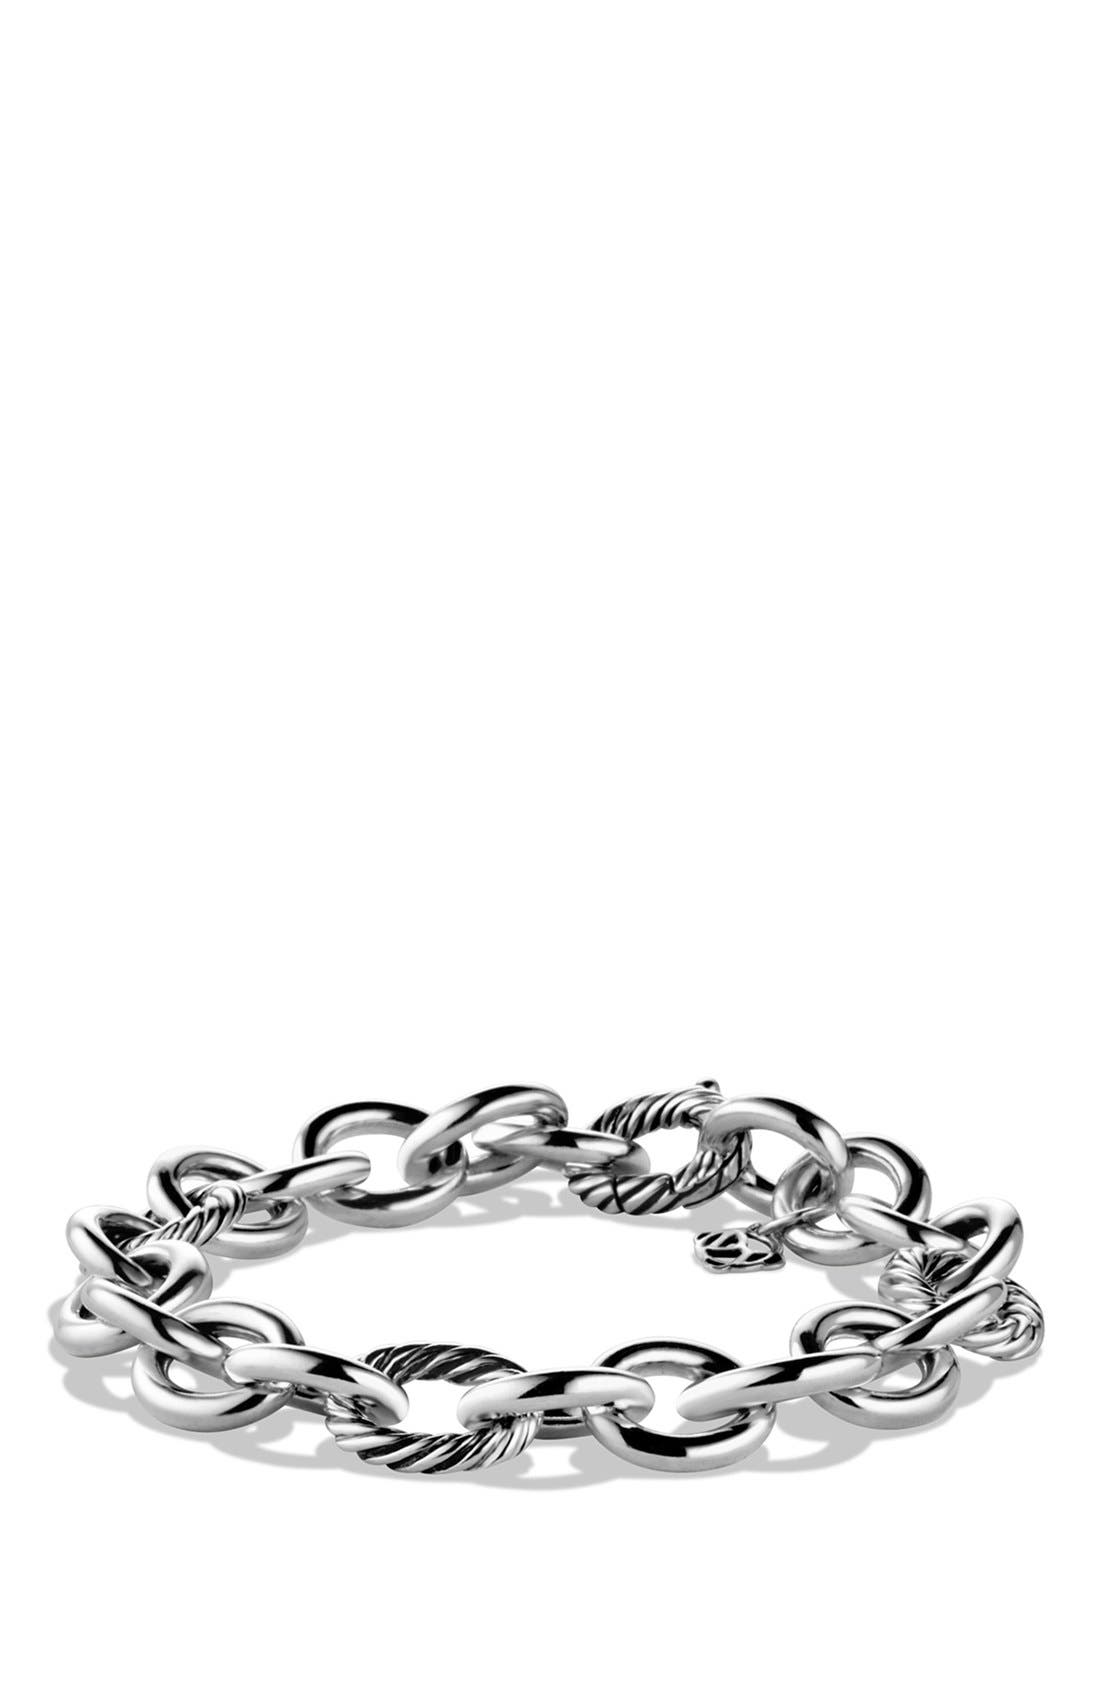 Alternate Image 1 Selected - David Yurman 'Oval' Large Link Bracelet